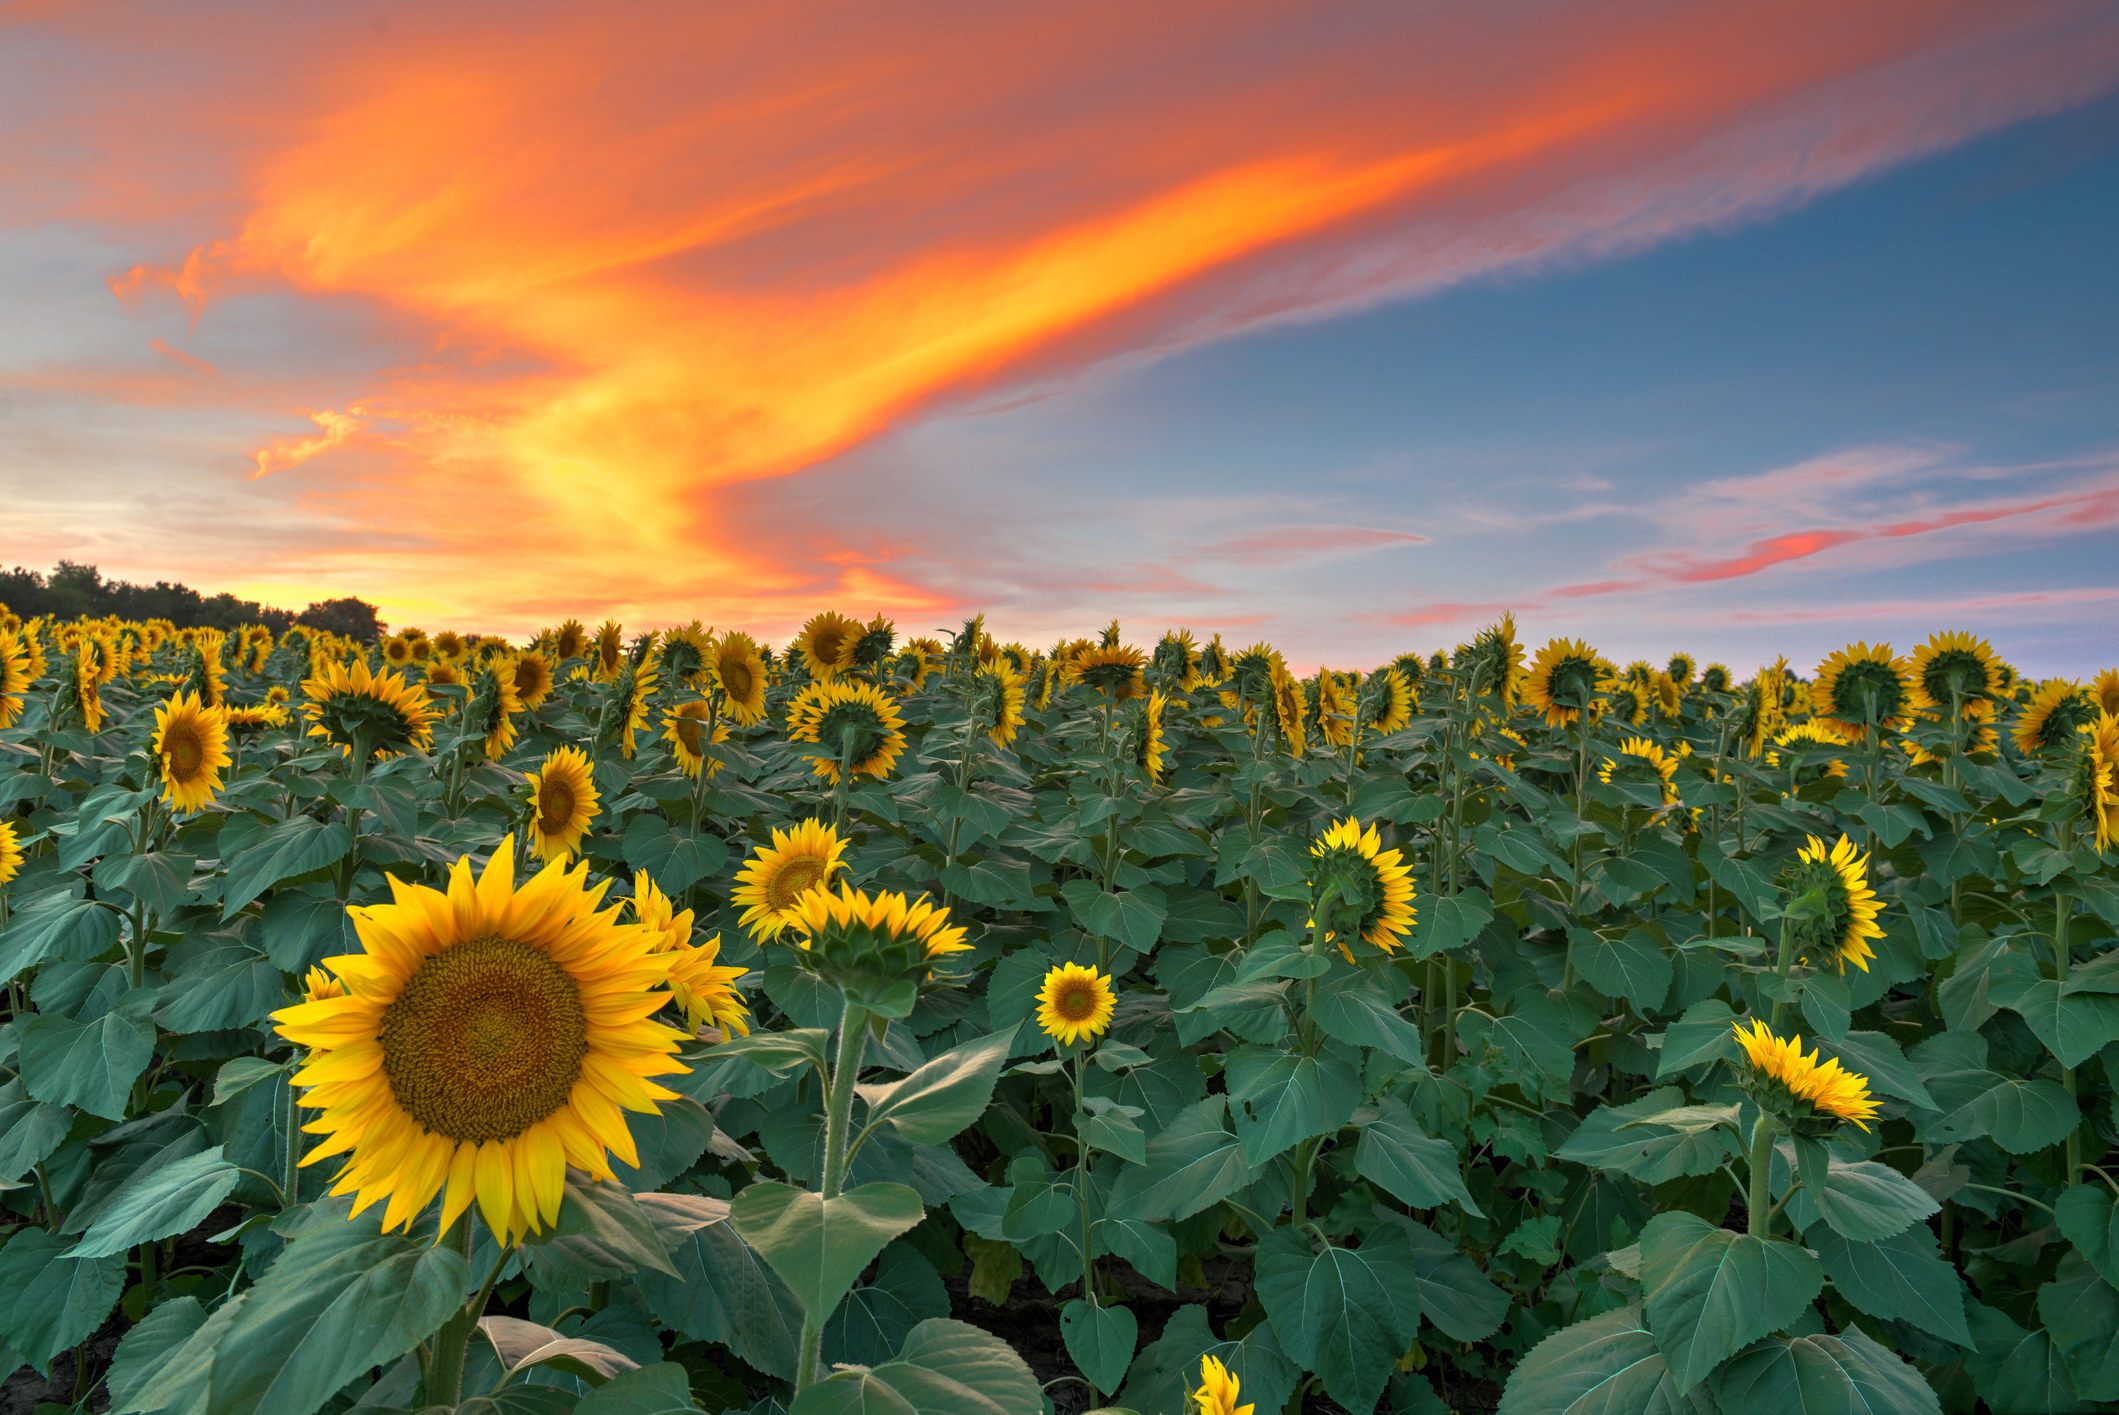 A cloudy sunset over a field of sunflowers